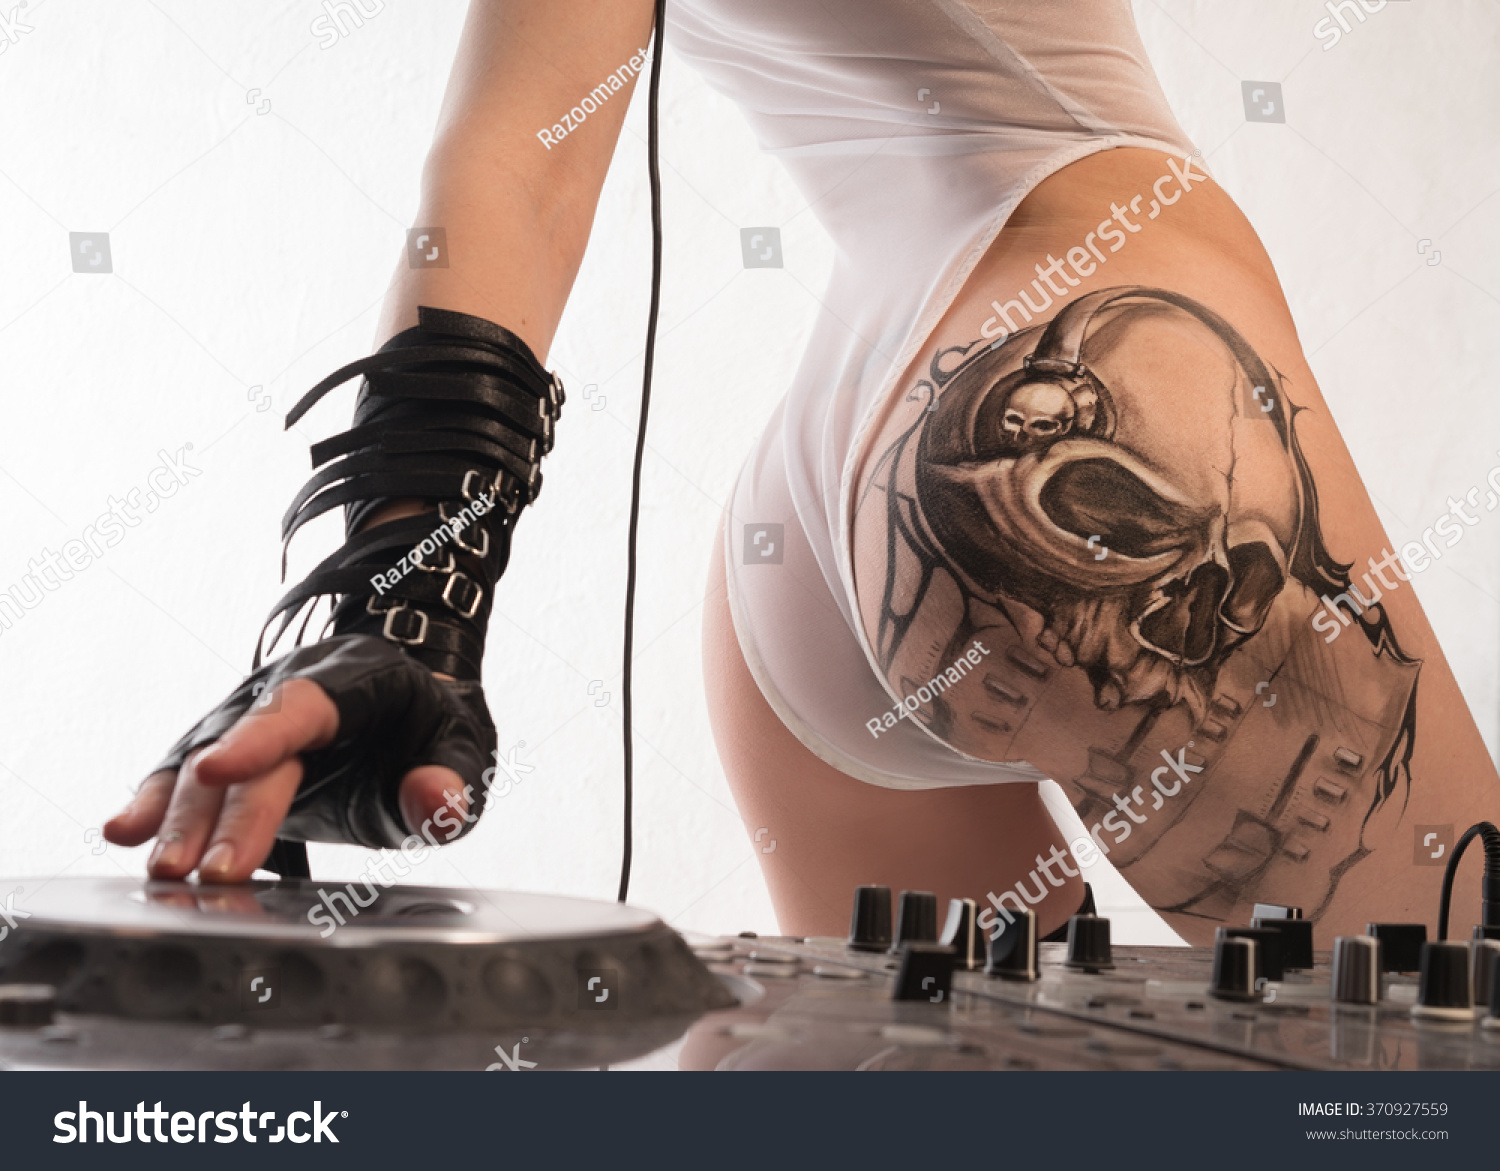 A girl with a beautiful ass plays electronic music mixer